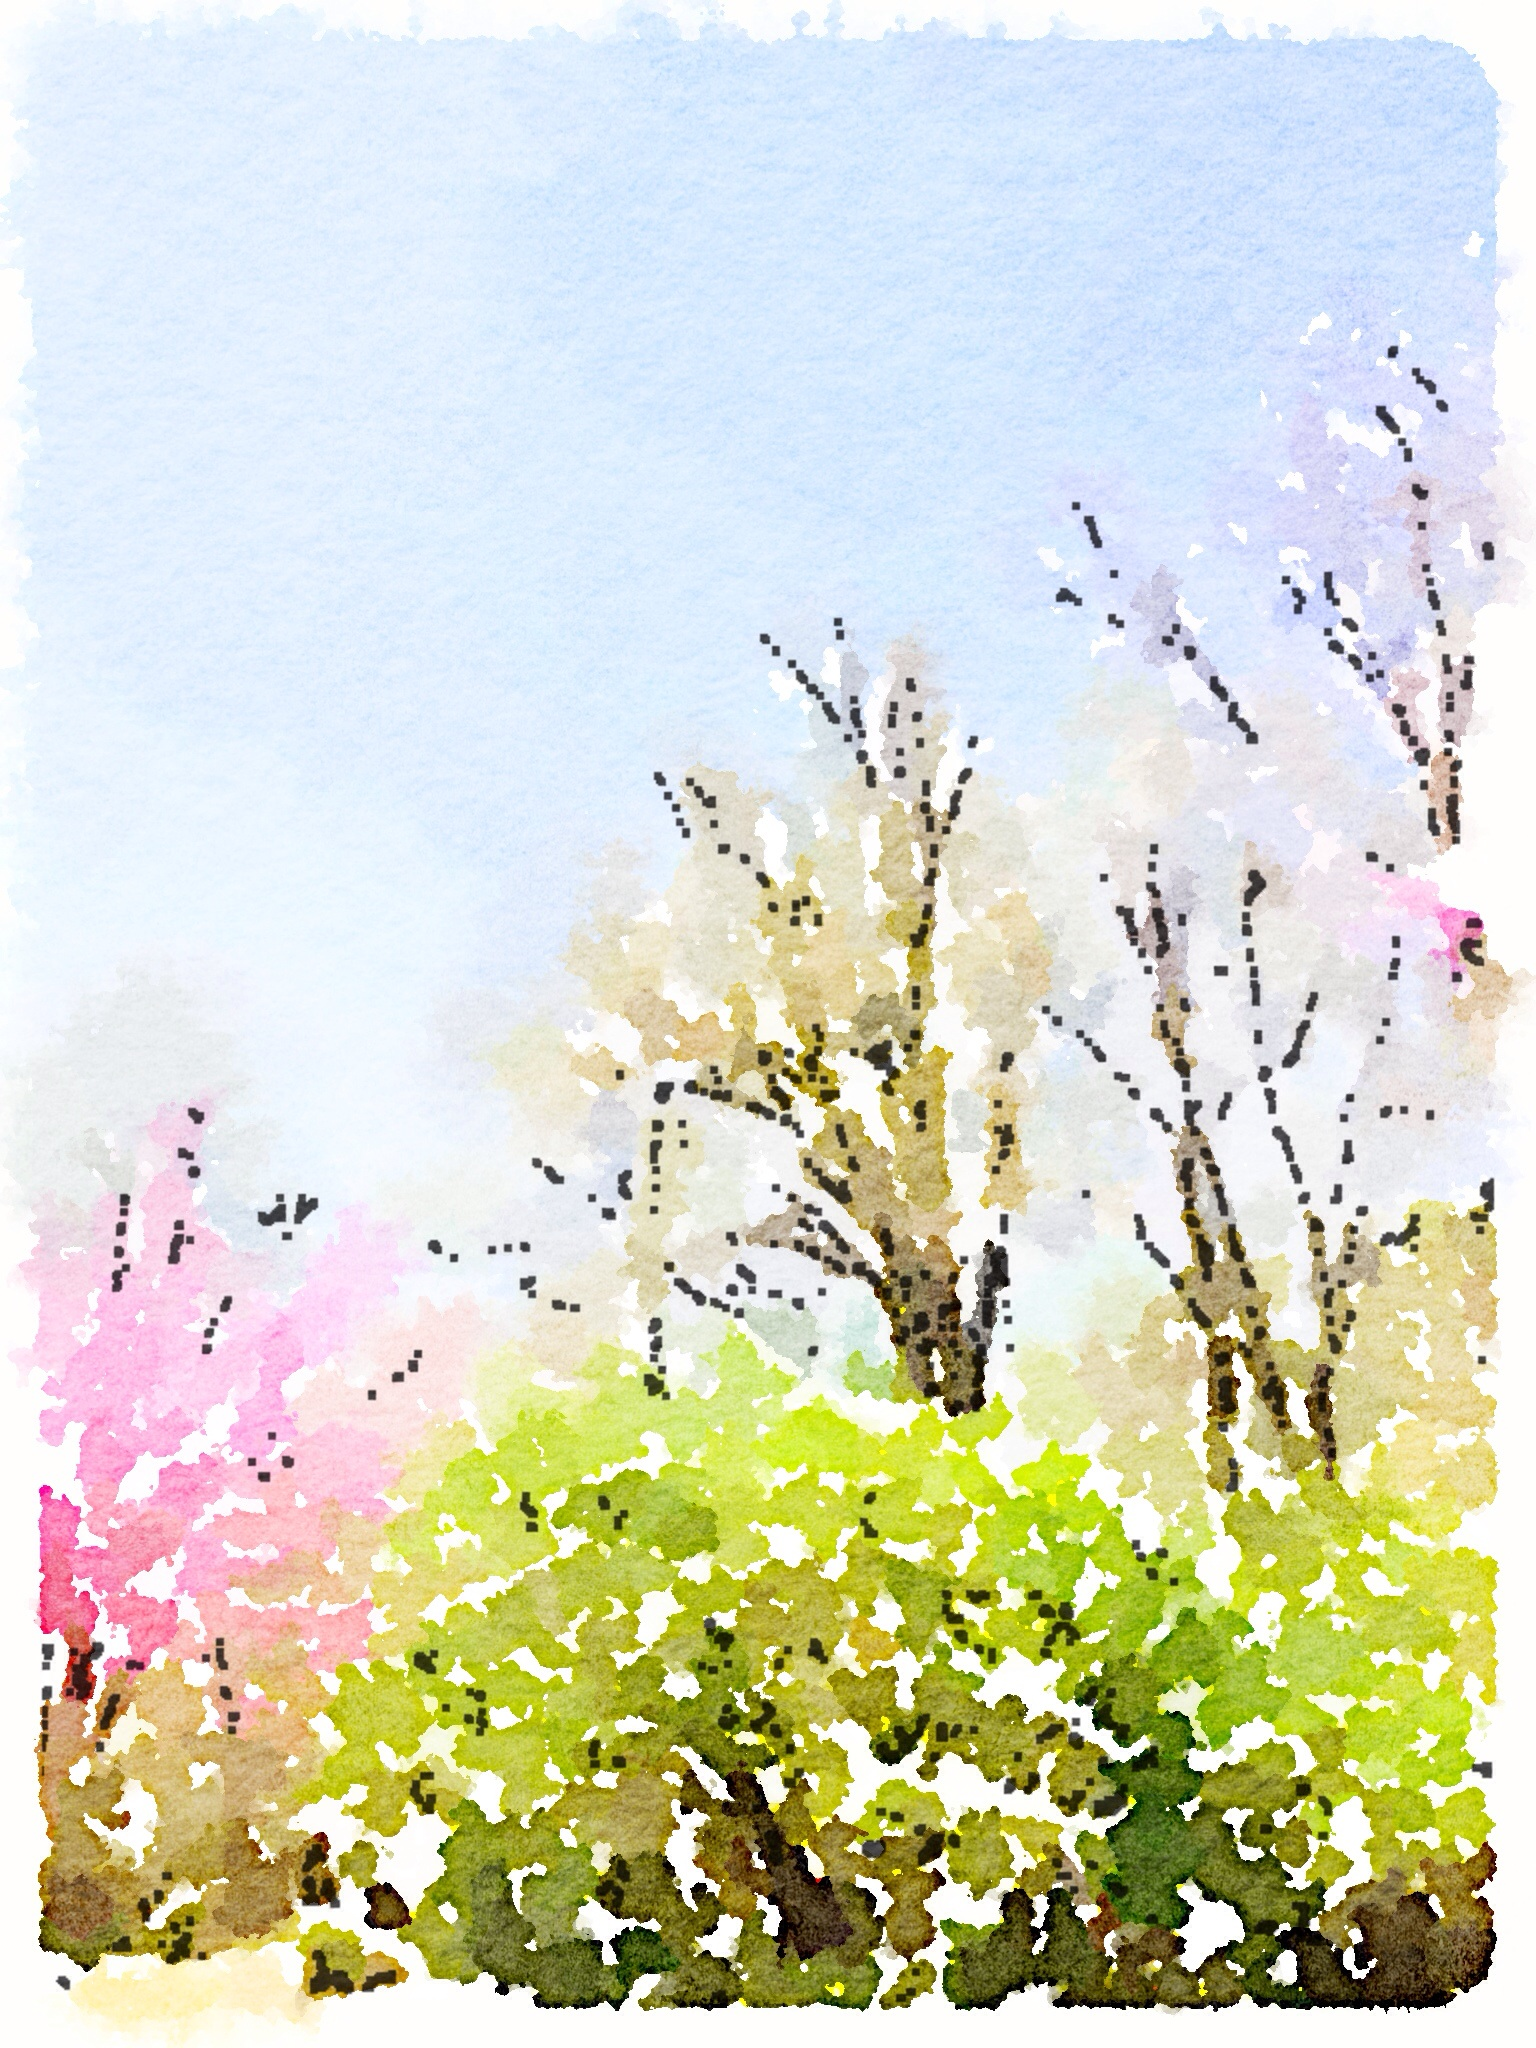 Local flora transformed with the app Waterlogue.